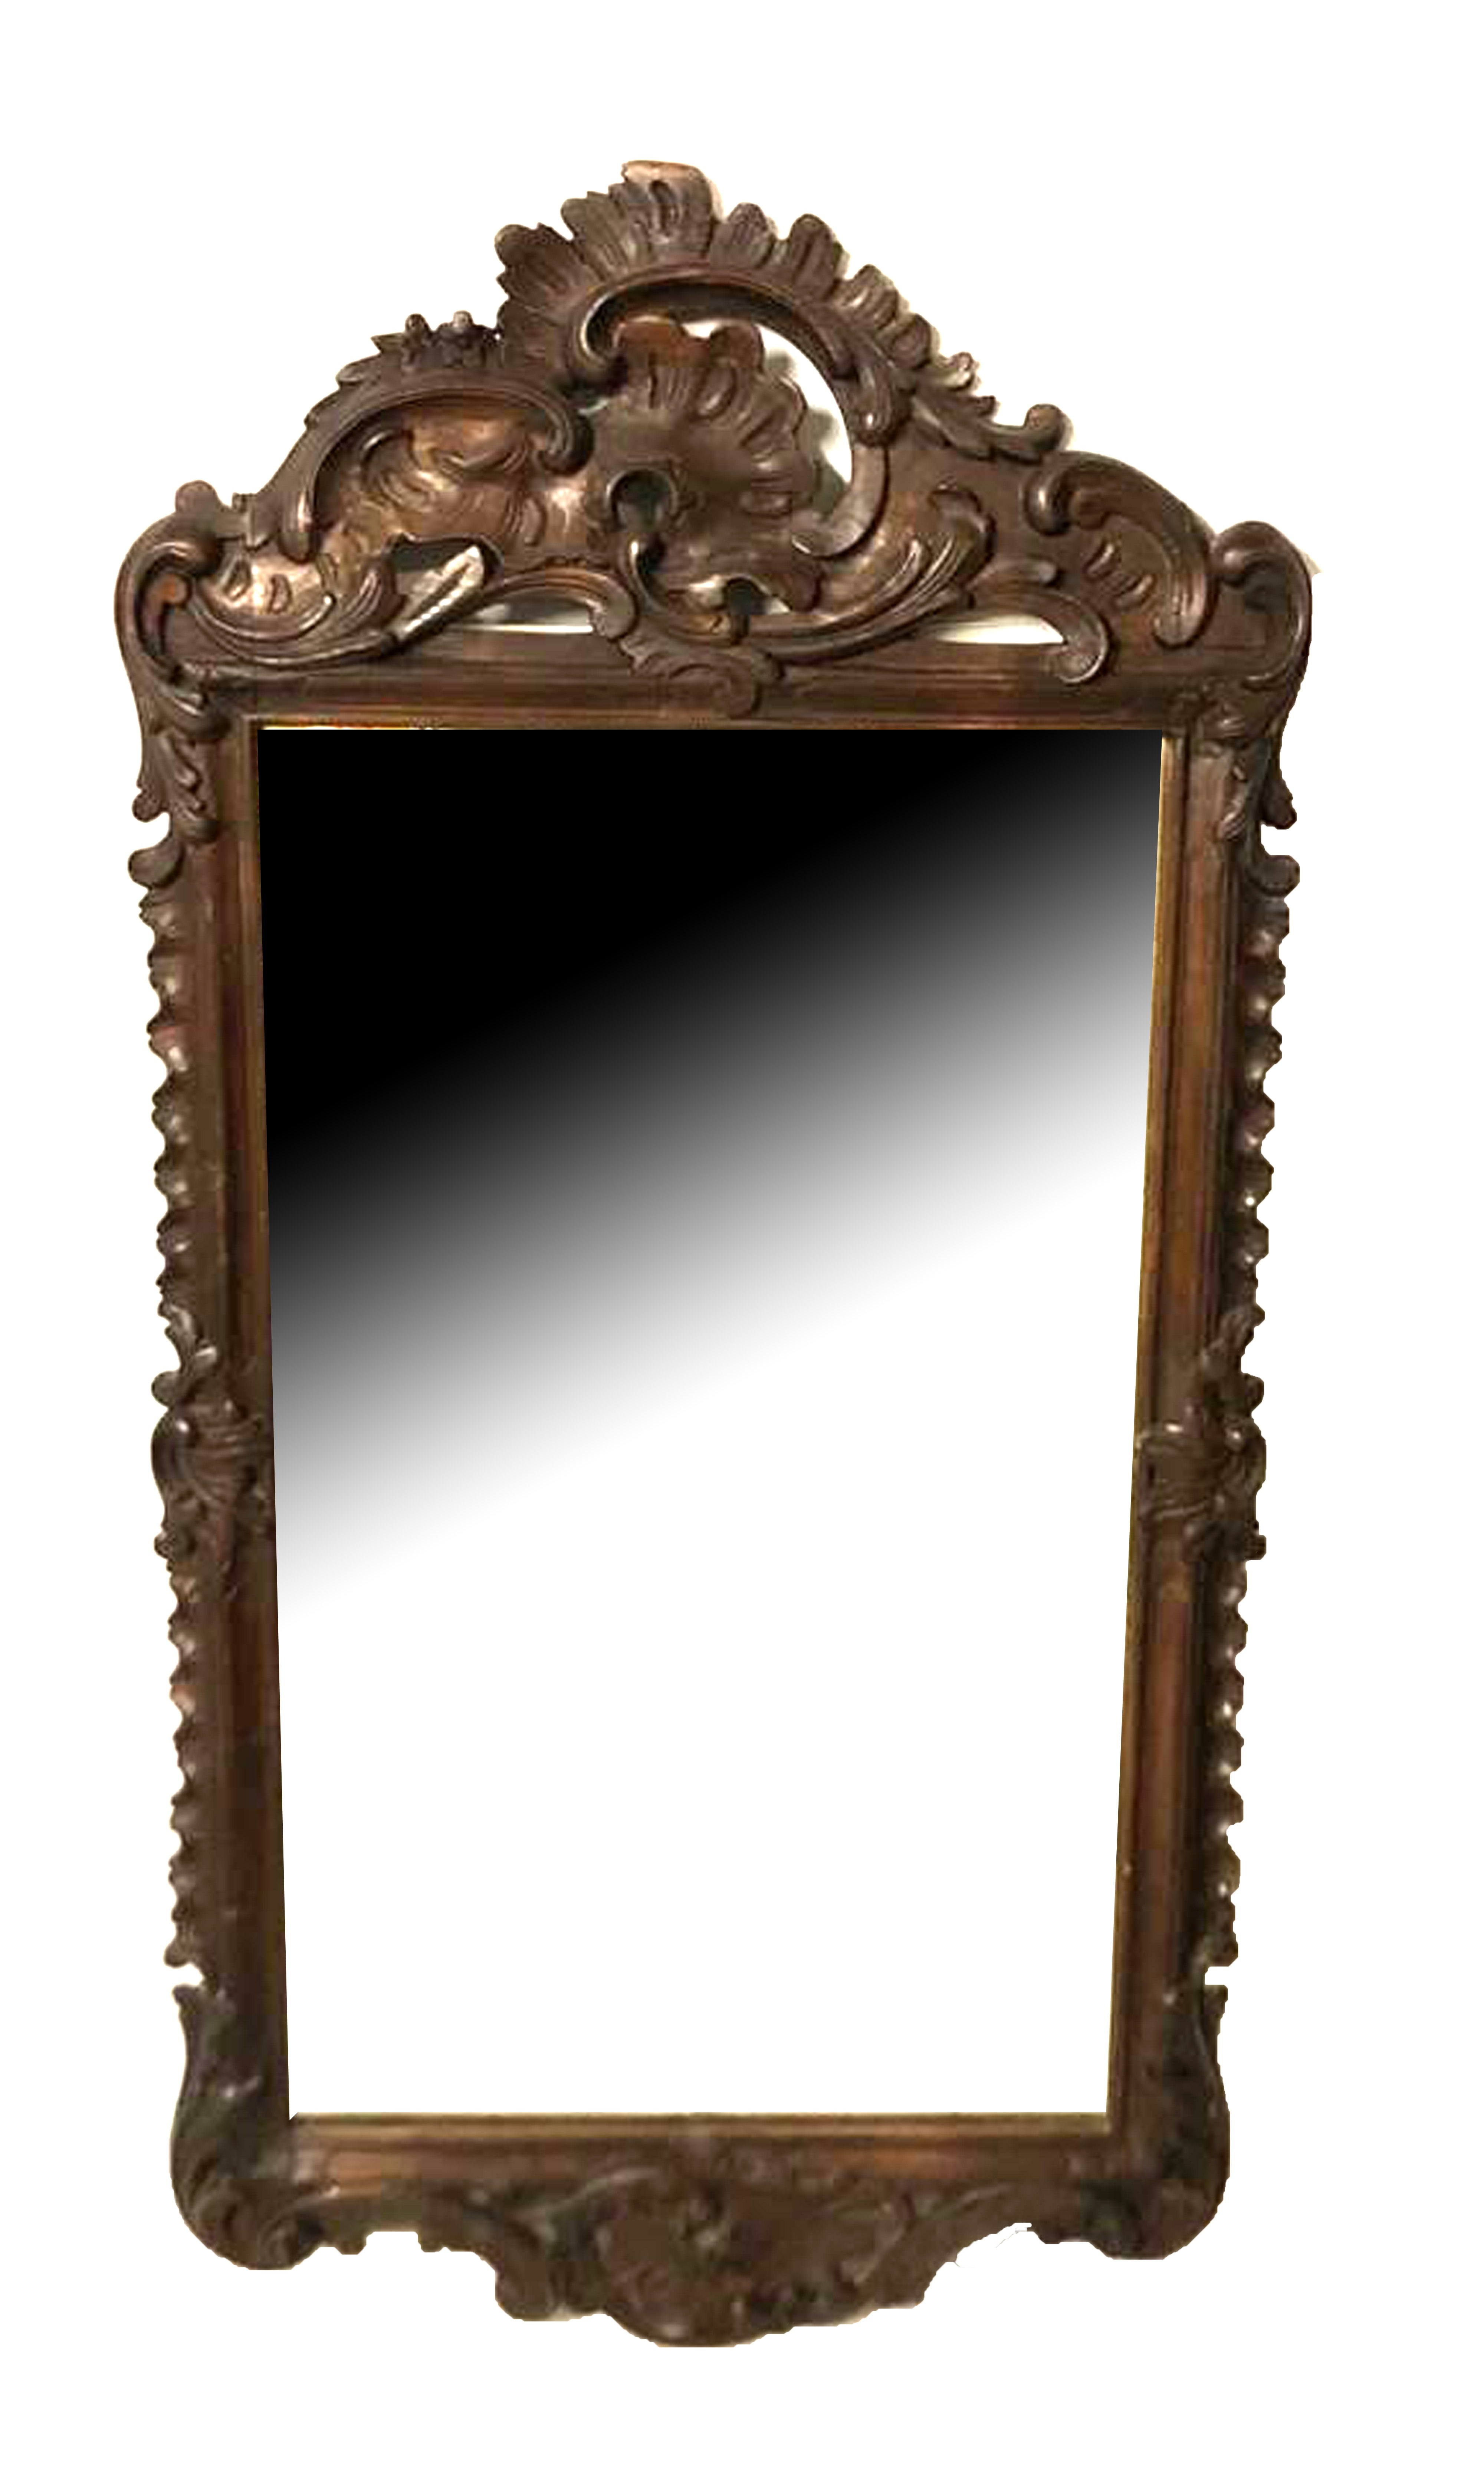 Lot 673 - A 19TH CENTURY ITALIAN CARVED PINE FRAMED MIRROR With pierced cartouche above a silvered plate. (